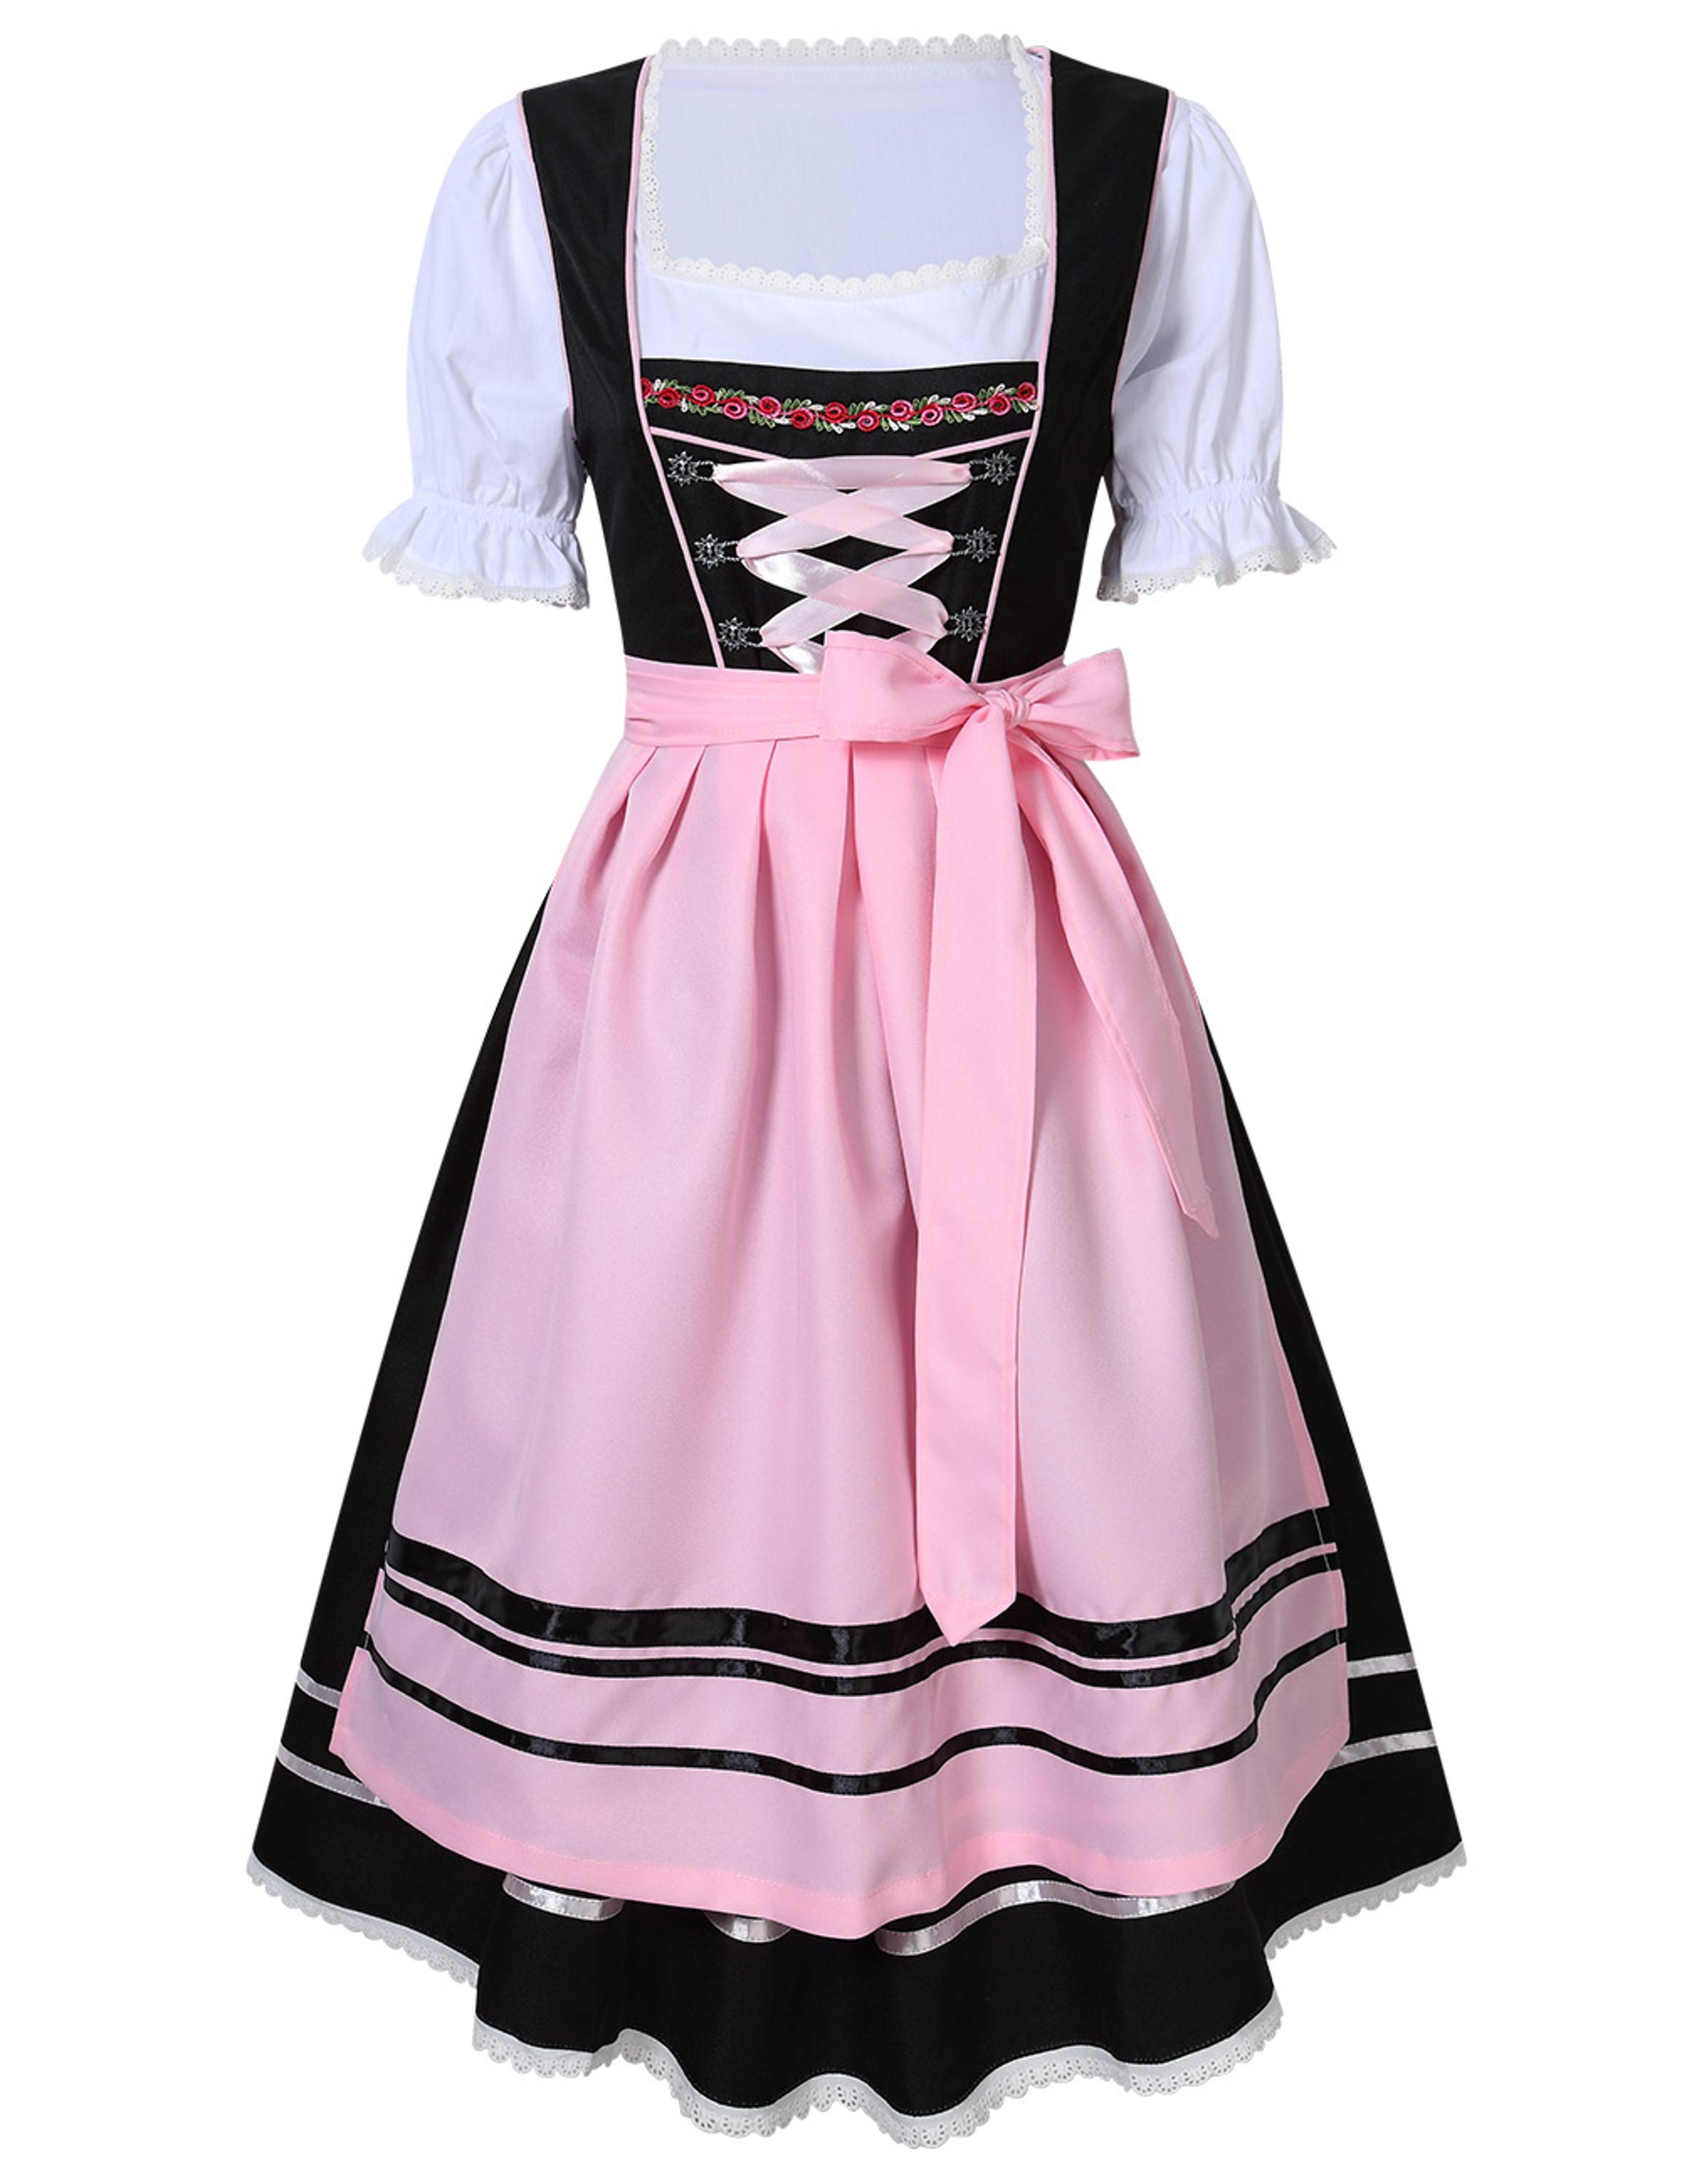 Ladies Oktoberfest Dirndl Taverniere Festival Carnival Costume Deguisement Short 3PC Waitress Beer Maid Girl Fancy Dress